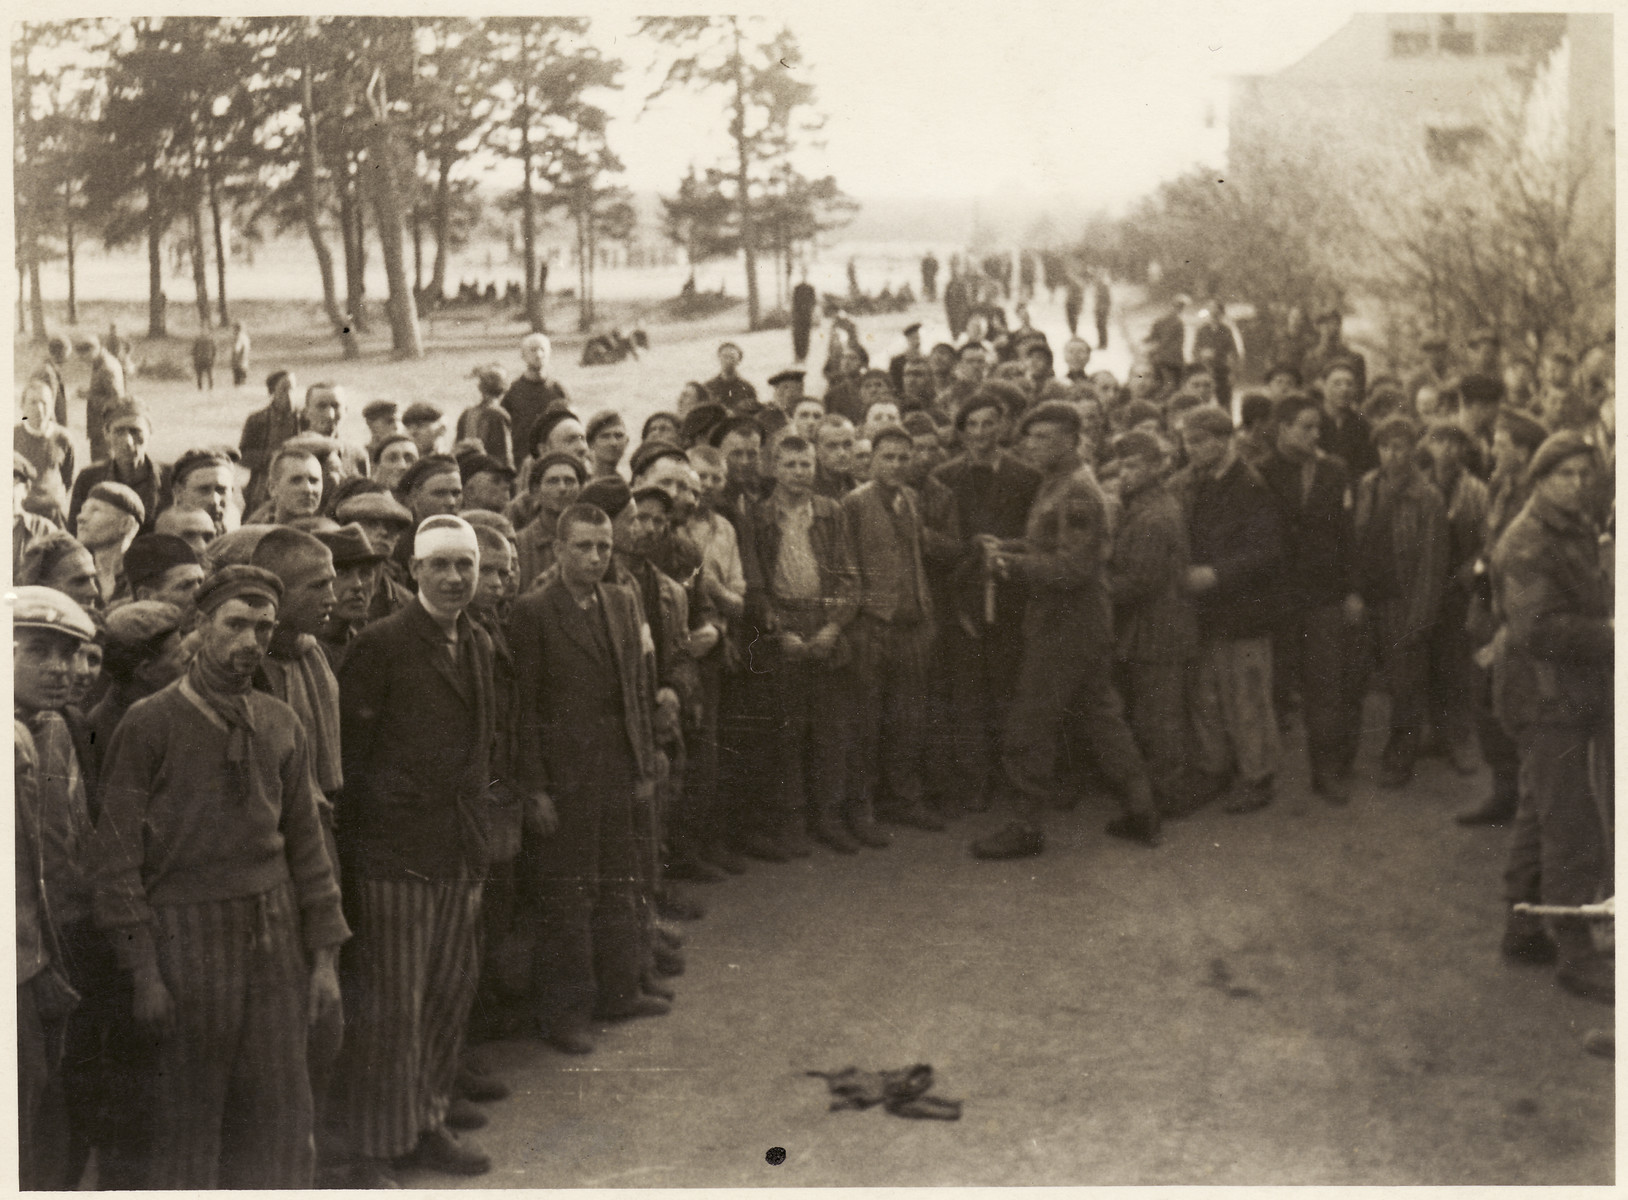 Survivors stand outside at the Bergen-Belsen concentration camp while British soldiers walk and stand among them.